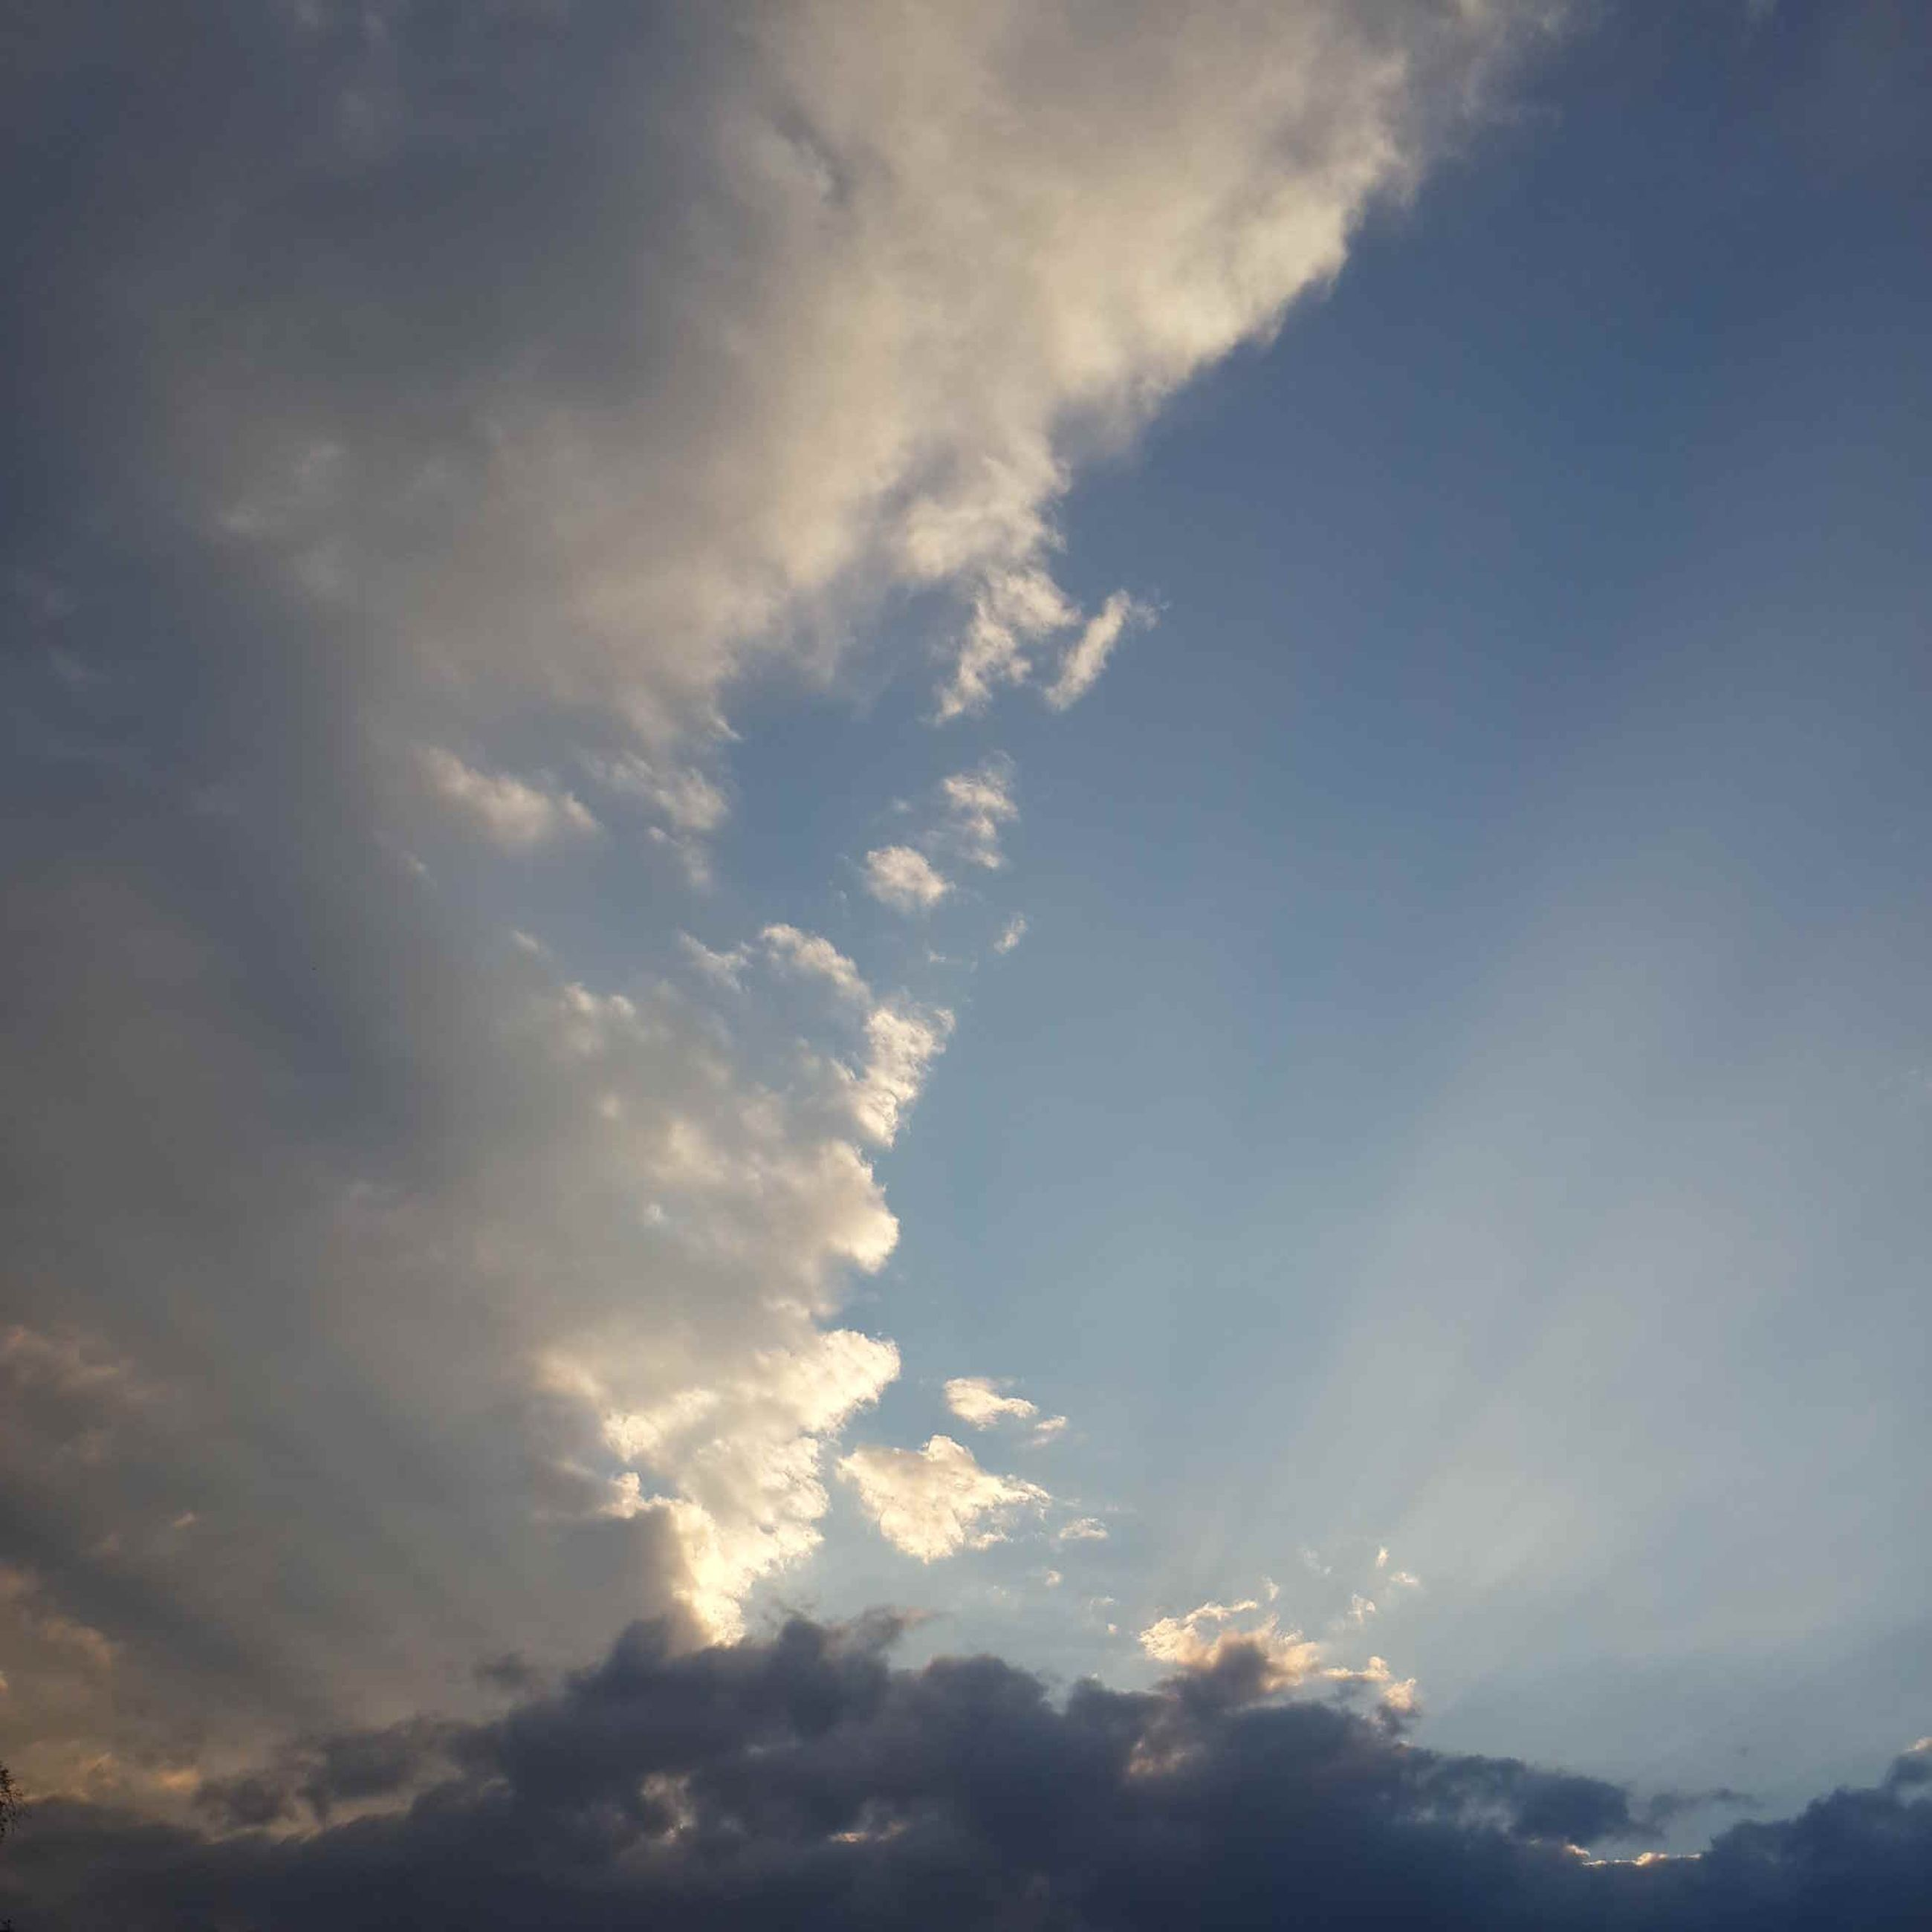 sky, low angle view, cloud - sky, beauty in nature, scenics, tranquility, sky only, nature, tranquil scene, cloudy, sunset, cloud, idyllic, cloudscape, sun, sunlight, sunbeam, backgrounds, outdoors, no people